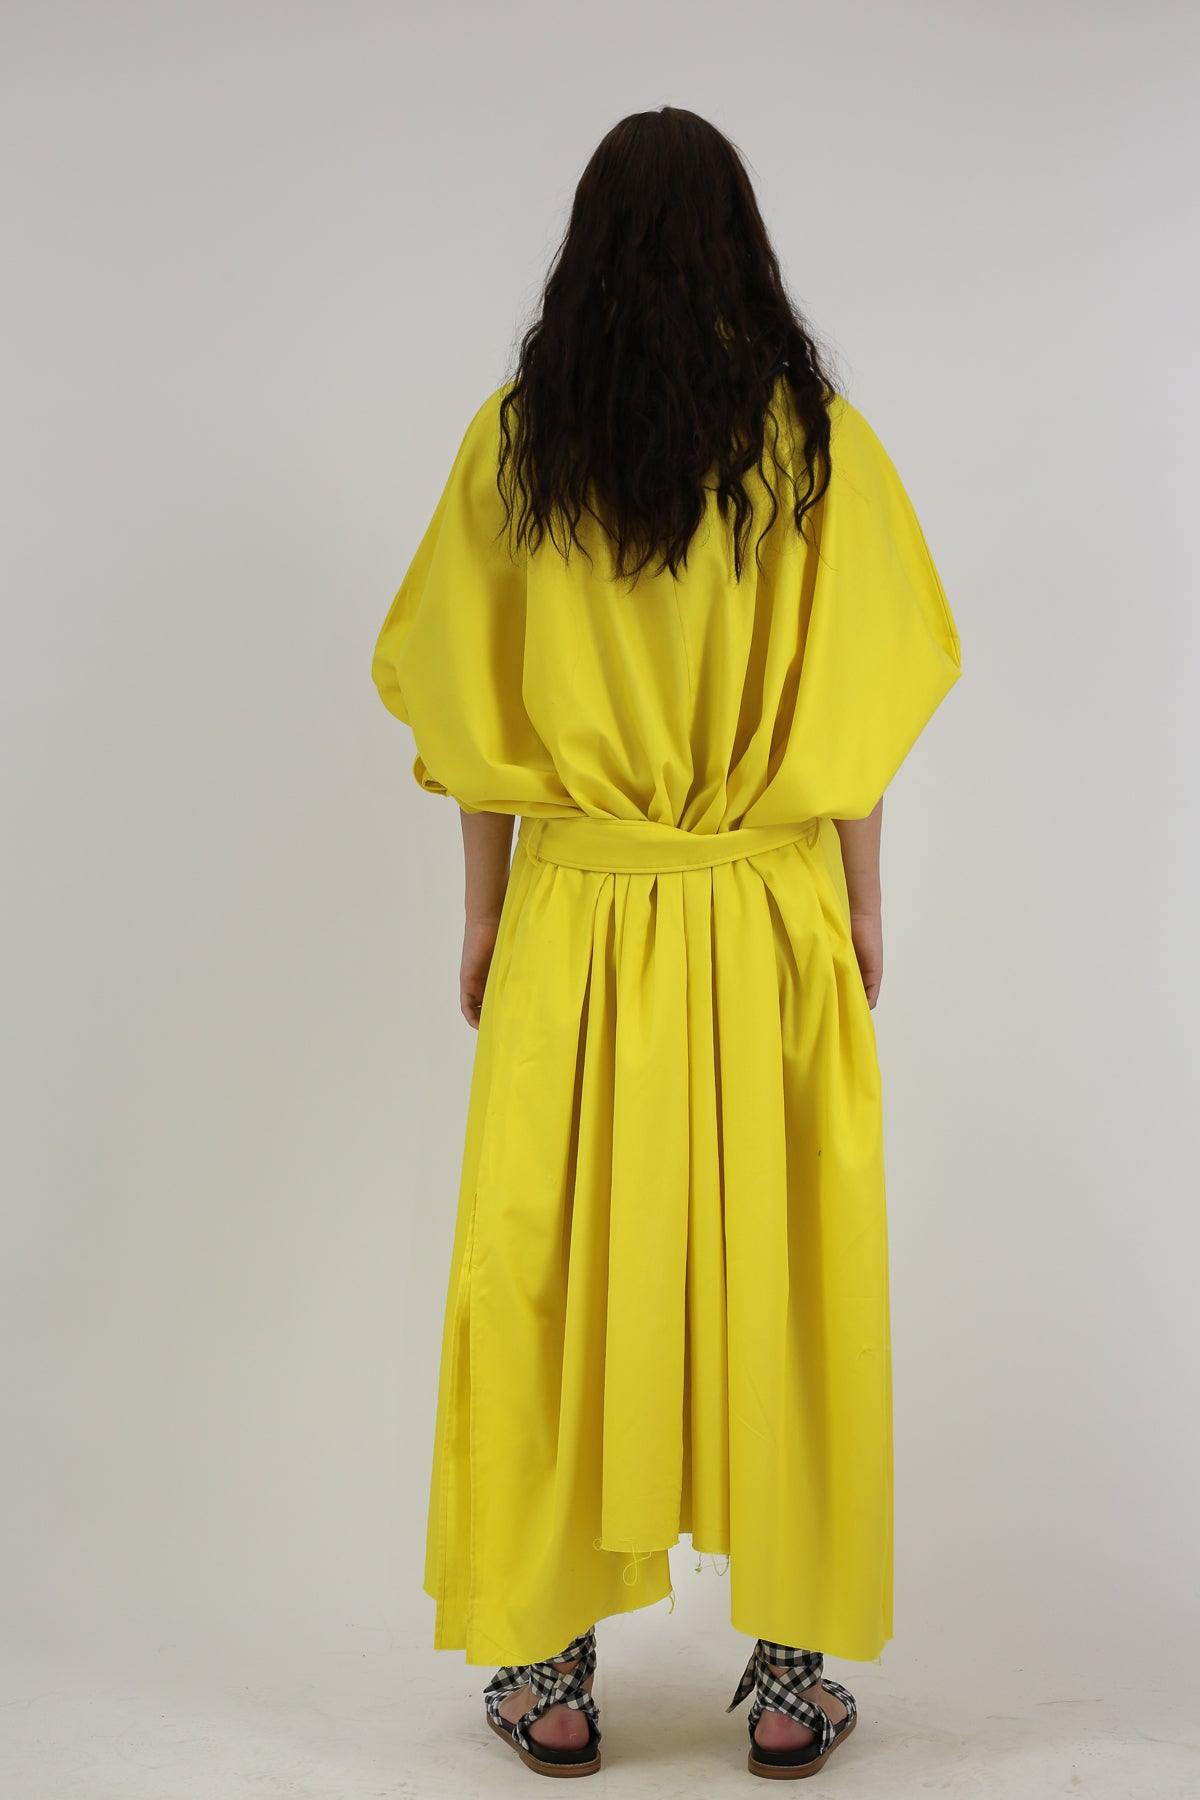 YELLOW COTTON RECTANGLE TUNIC DRESS - marques-almeida-dev